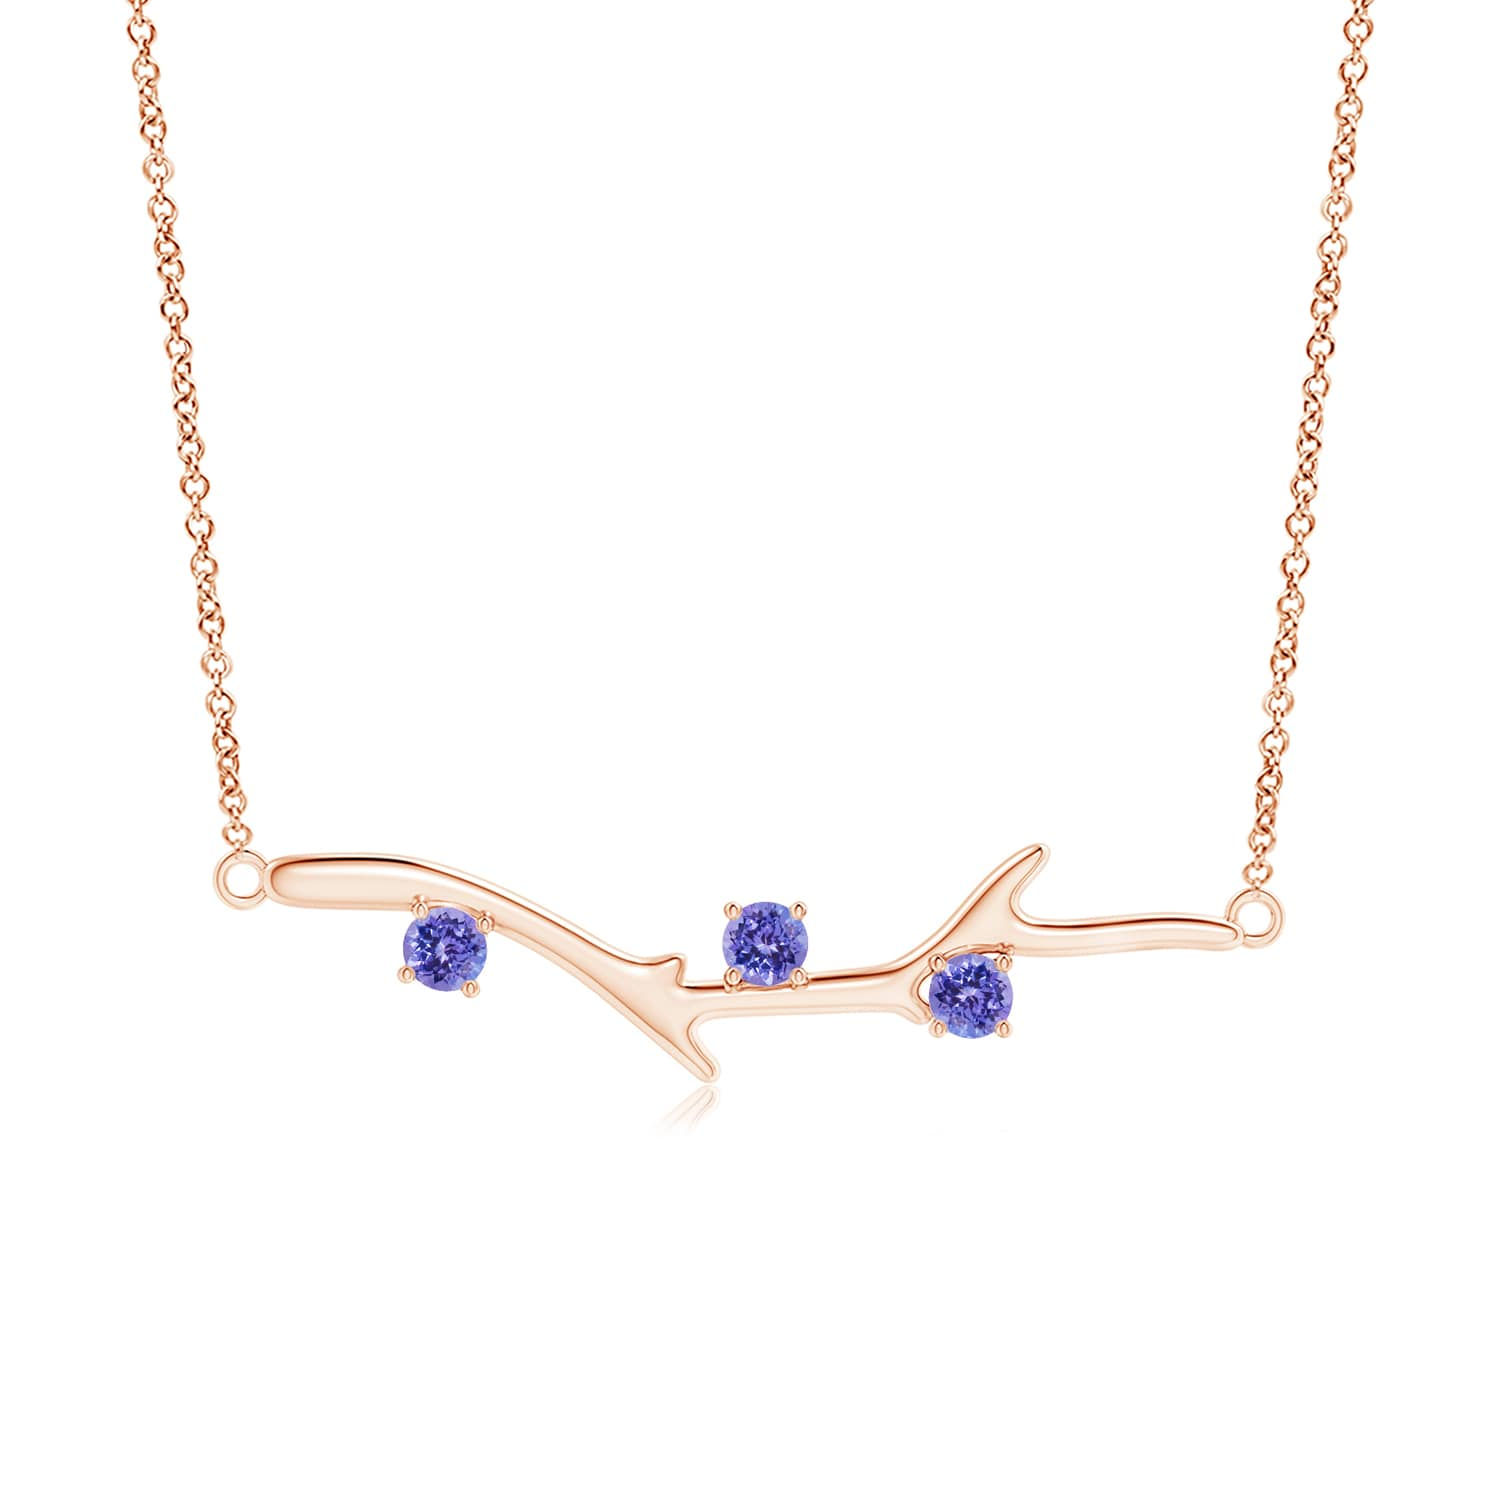 December Birthstone Pendant Necklaces 0.3 carat Round Brilliant Prongs Set Tanzanite Pendant Necklace in 14K Rose Gold... by Angara.com